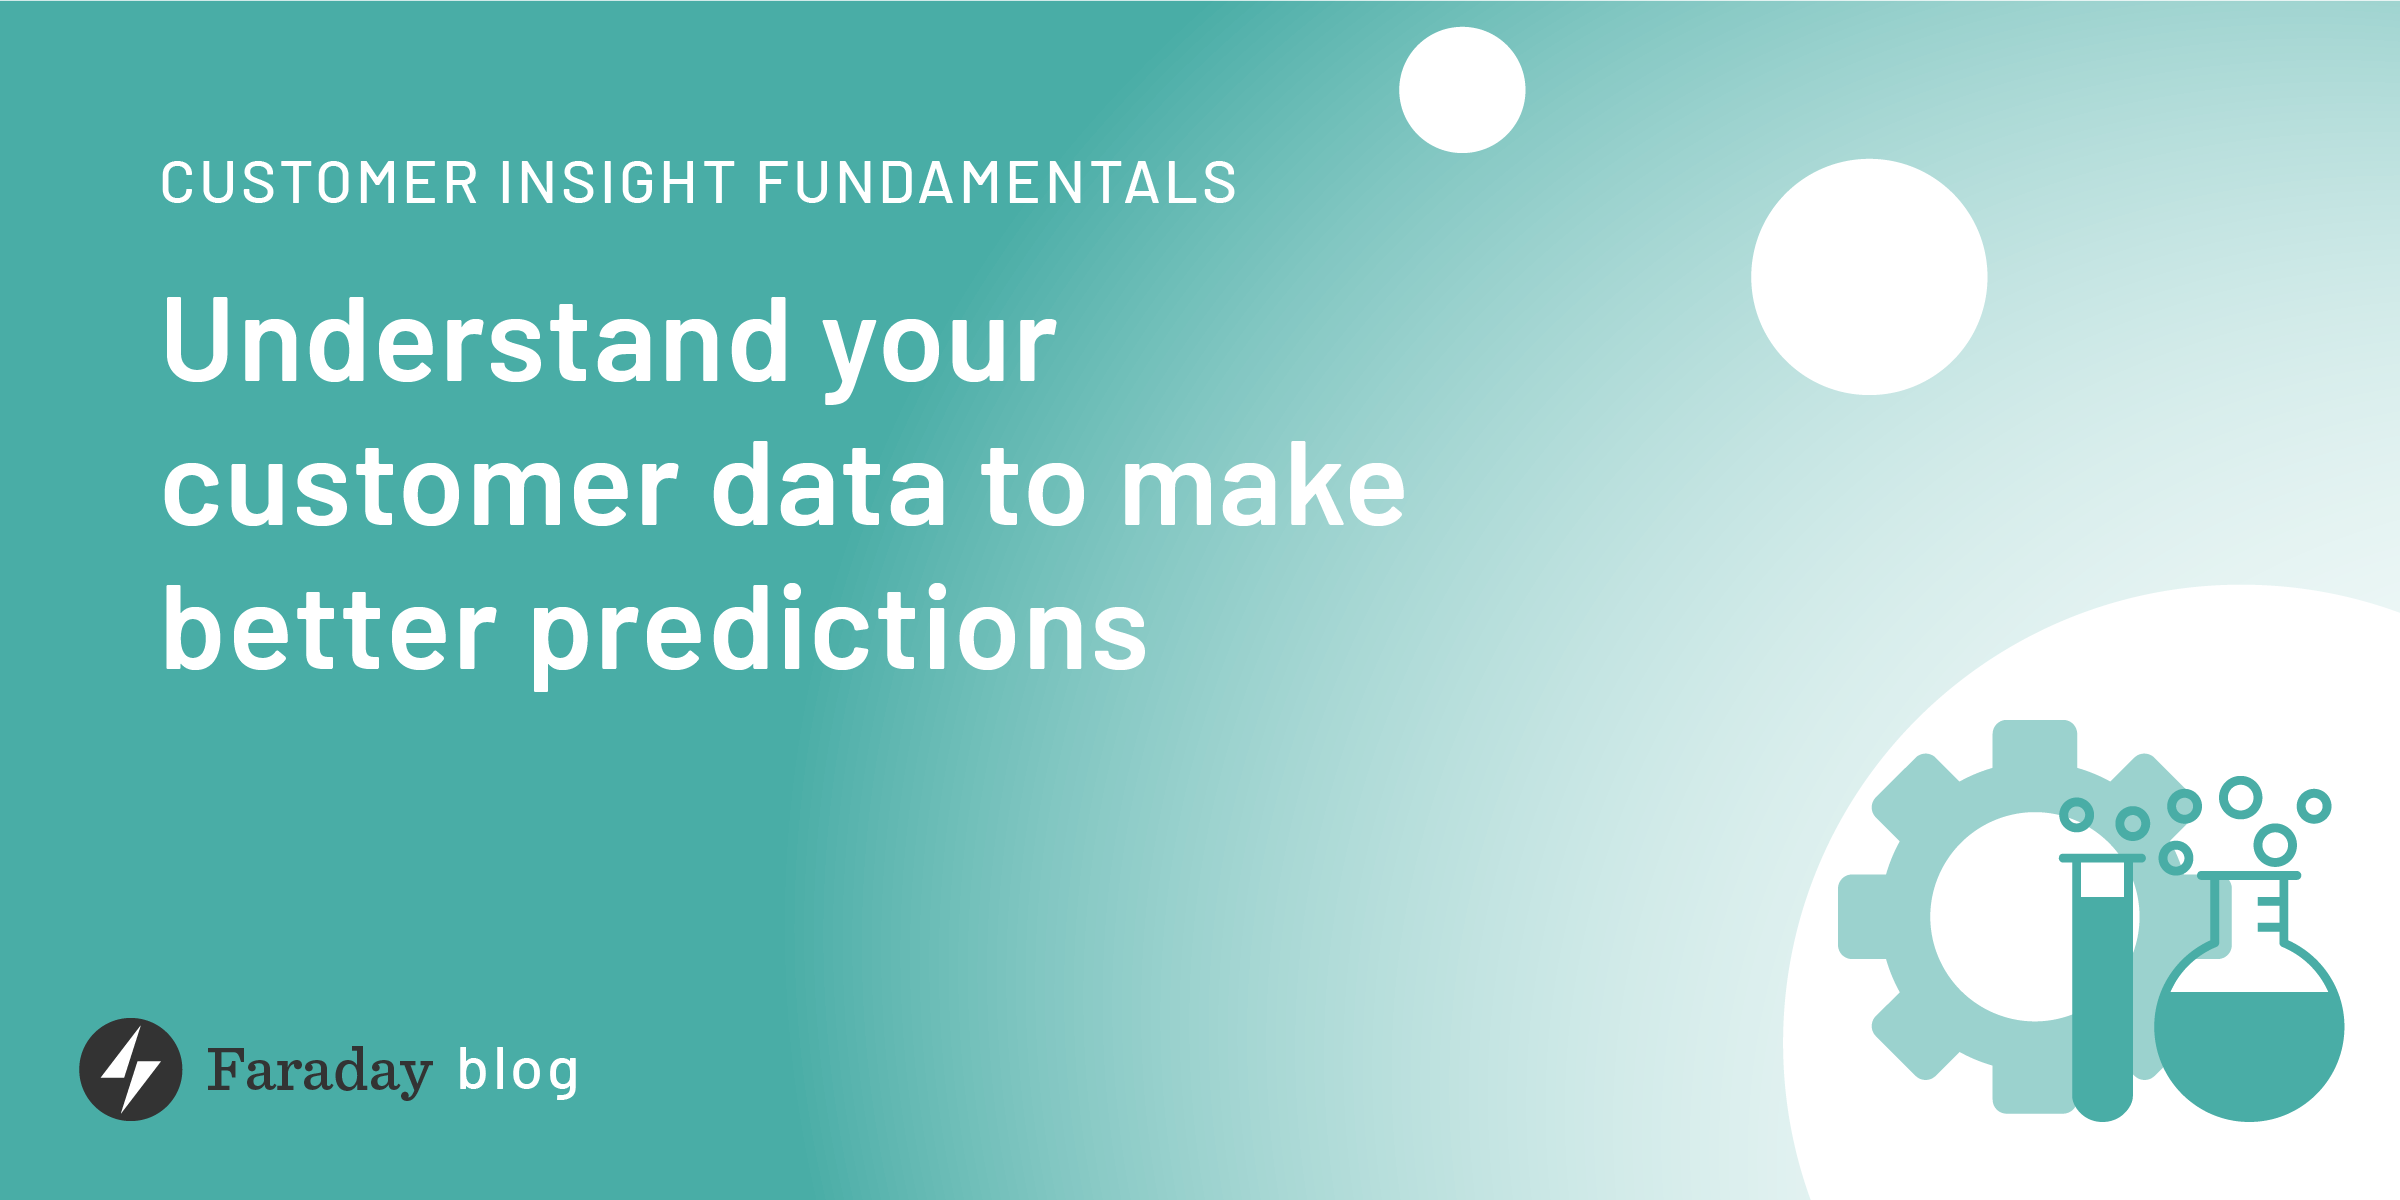 Customer insight fundamentals customer data survey for predictions blog